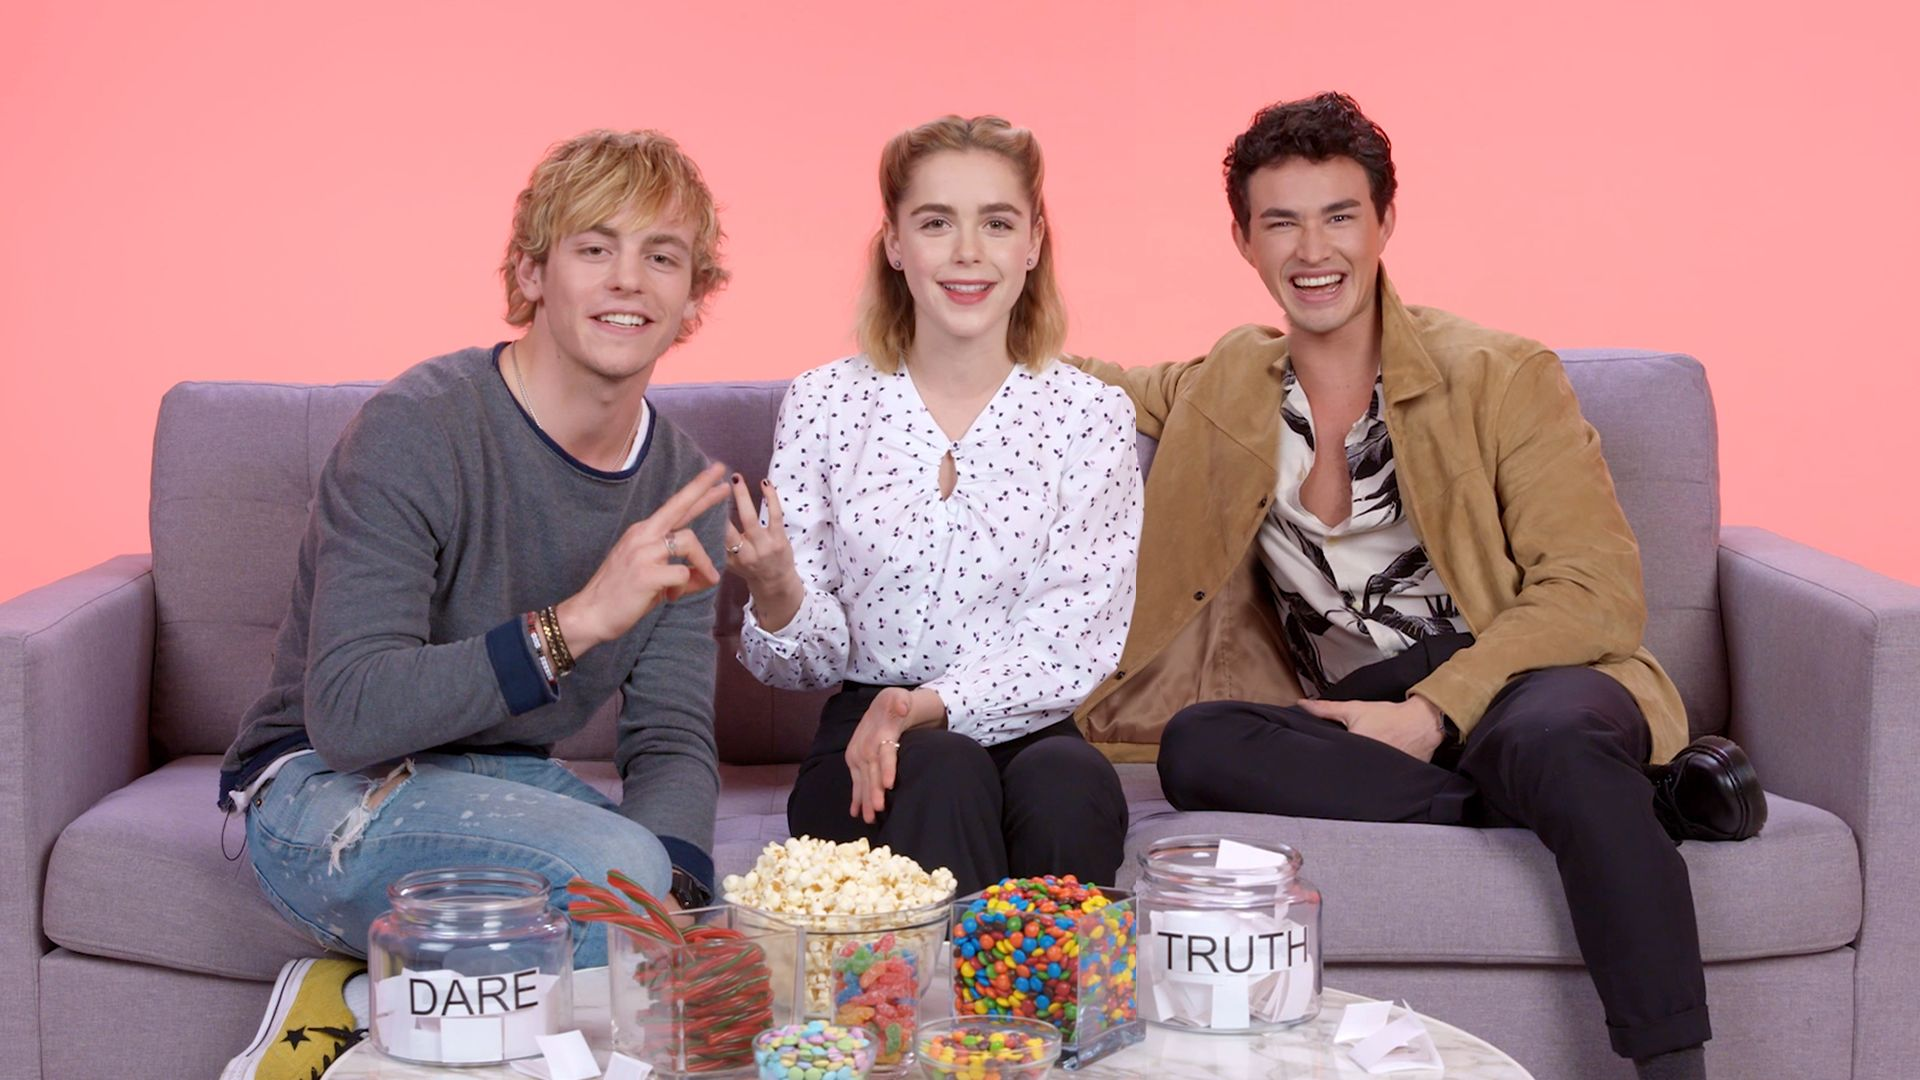 """Watch Truth or Dare  """"The Chilling Adventures of Sabrina"""" Cast Plays 'I Dare You'  Teen Vogue"""